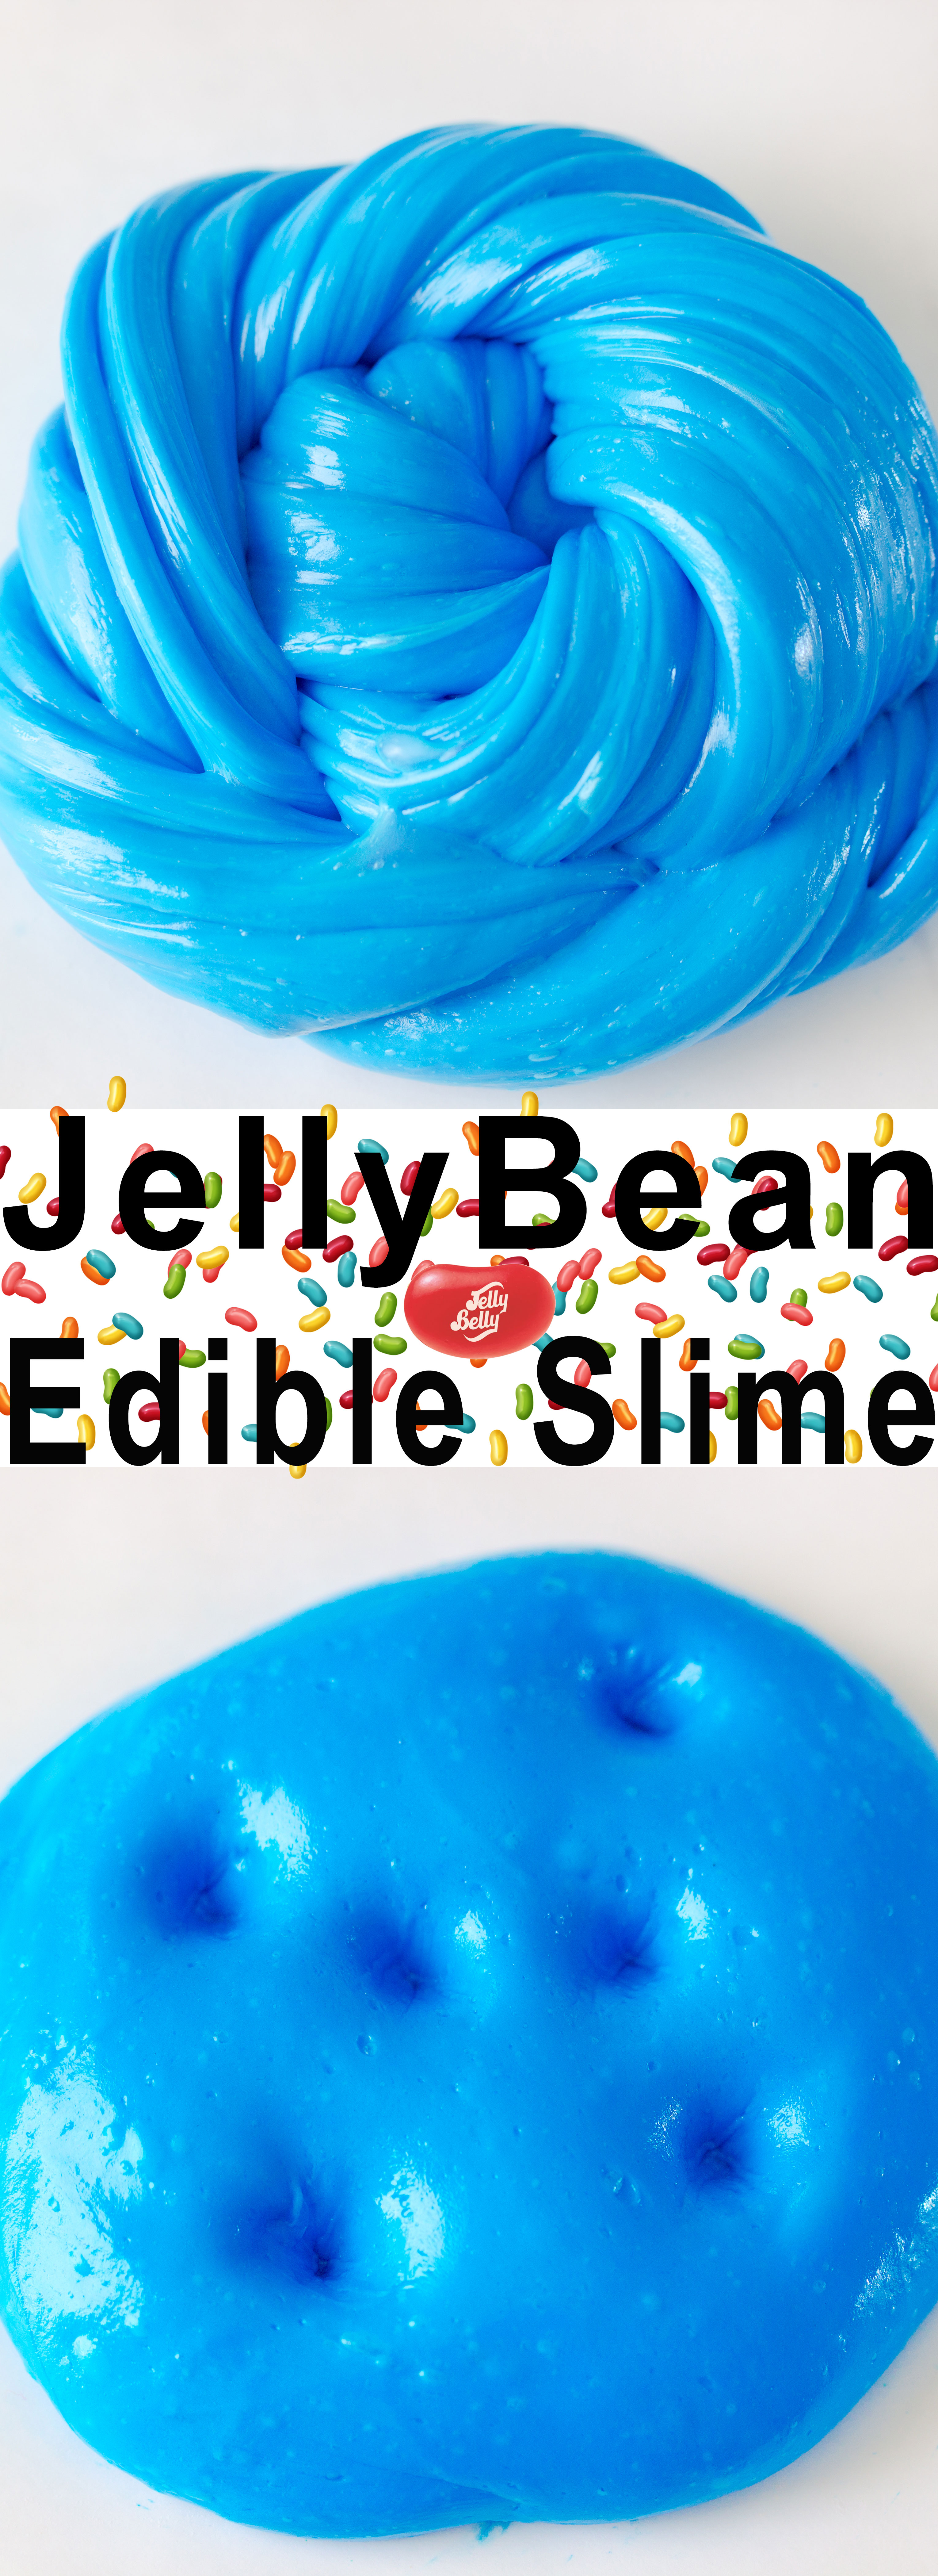 How to make edible jelly bean slime savvy naturalista today we are going to make edible jelly bean slime this edible slime is made with just jelly beans and a few simple ingredients to ccuart Images